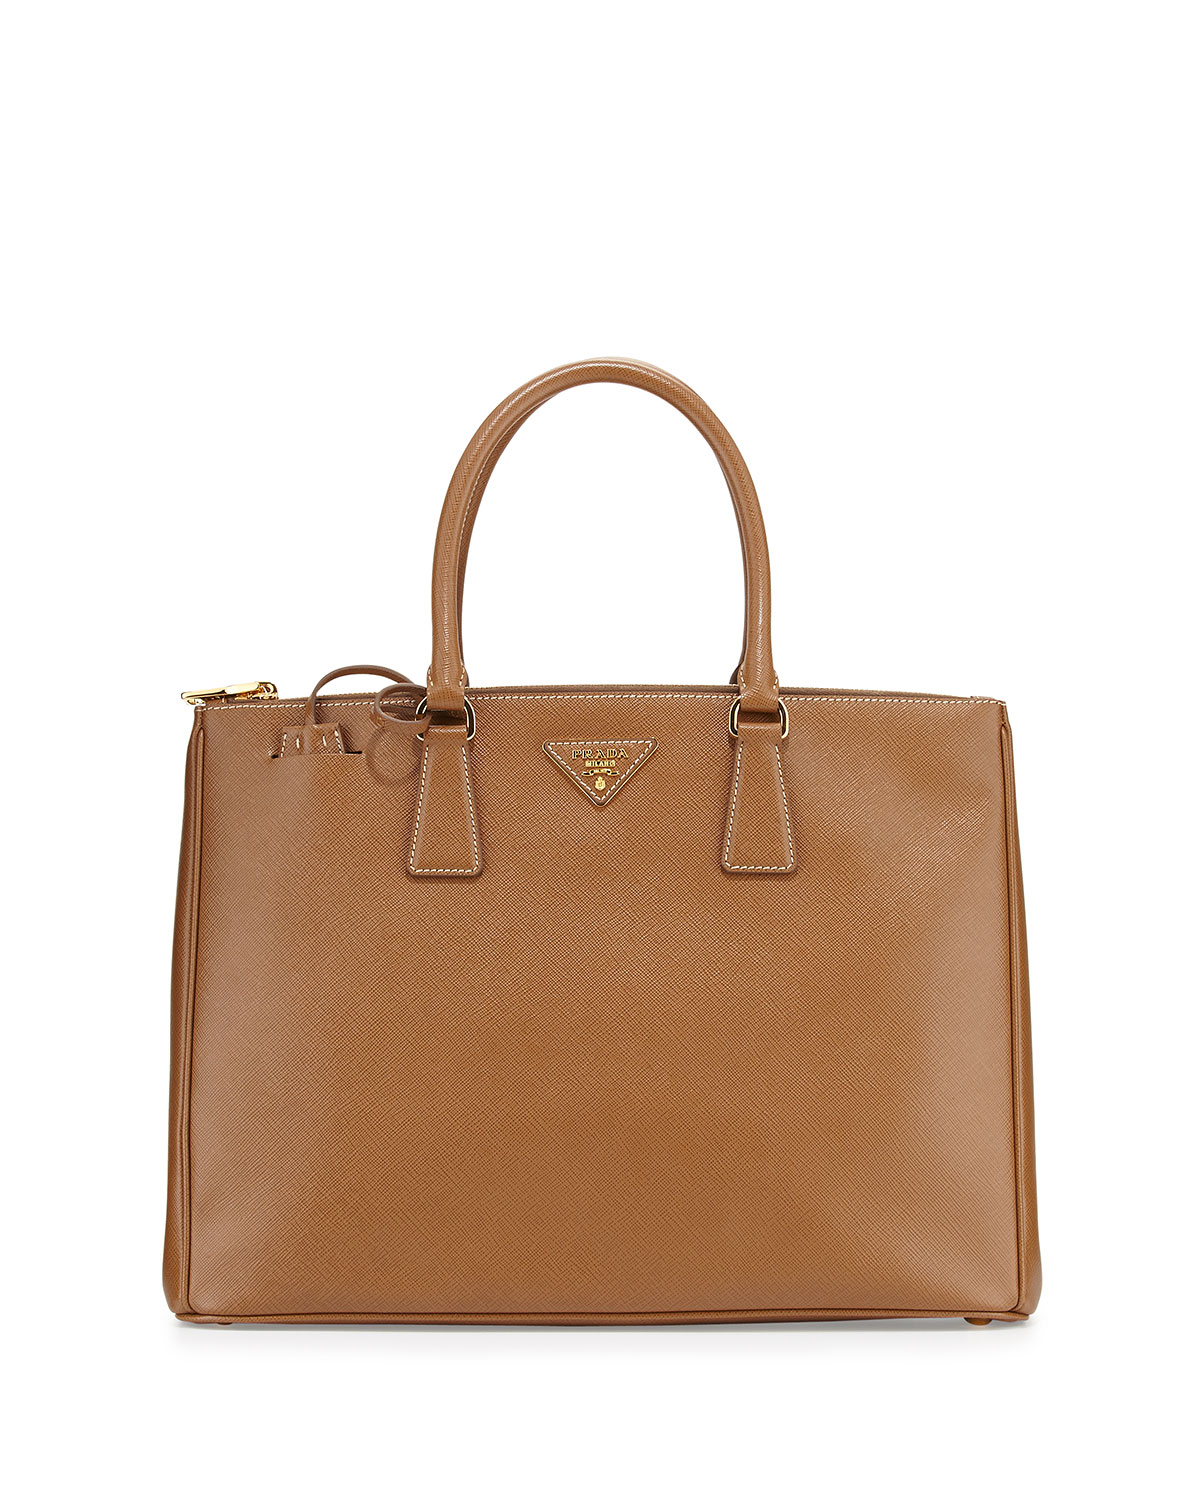 6de62ef709dc Prada Saffiano Lux Executive Tote Bag